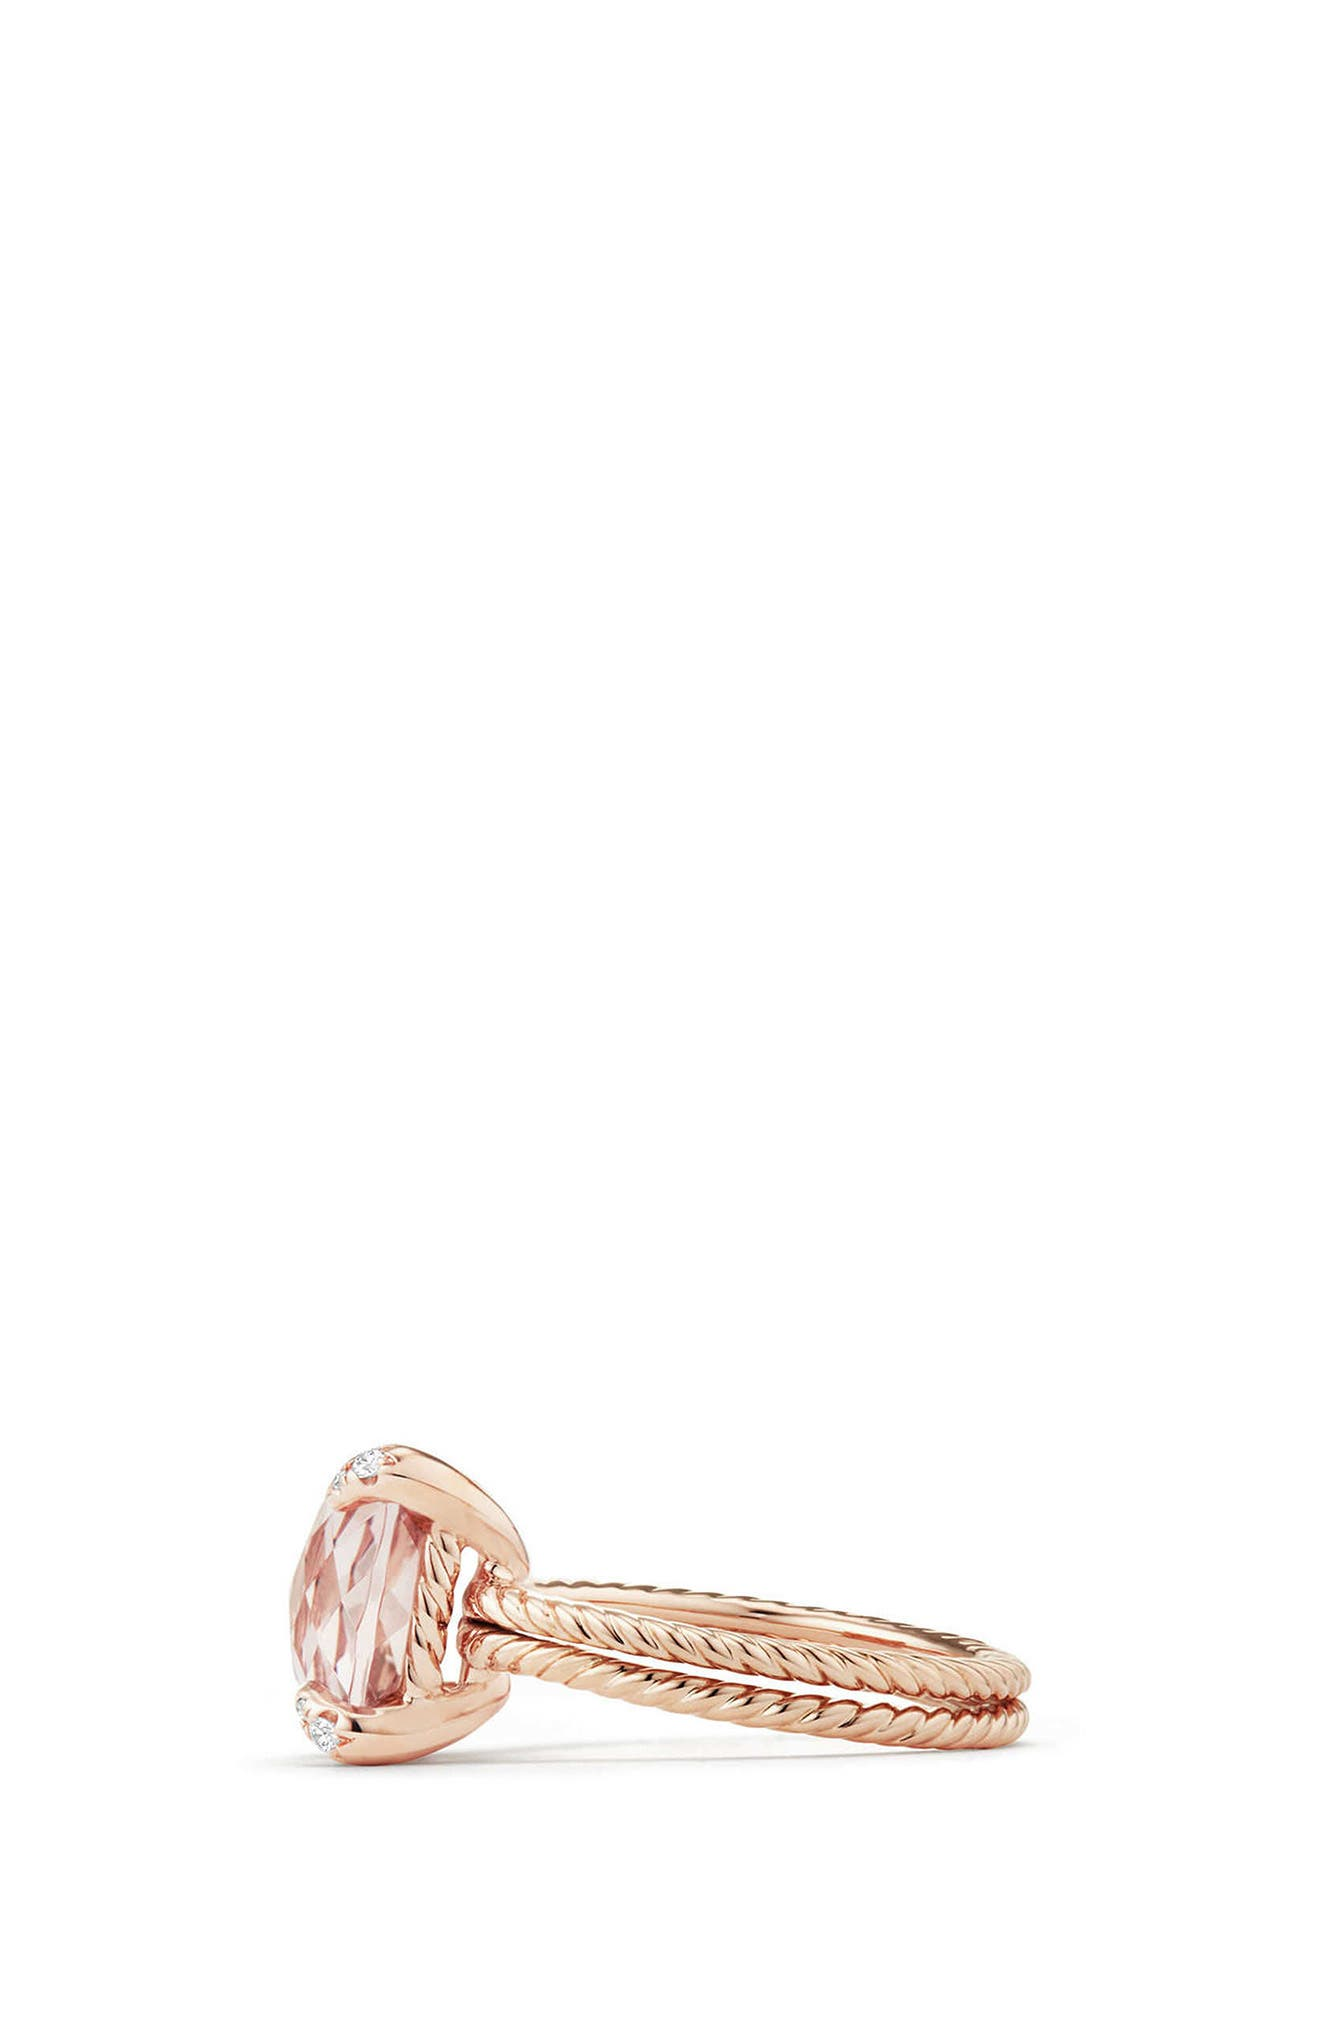 Chatelaine<sup>®</sup> Morganite & Diamond Ring in 18K Rose Gold,                             Alternate thumbnail 2, color,